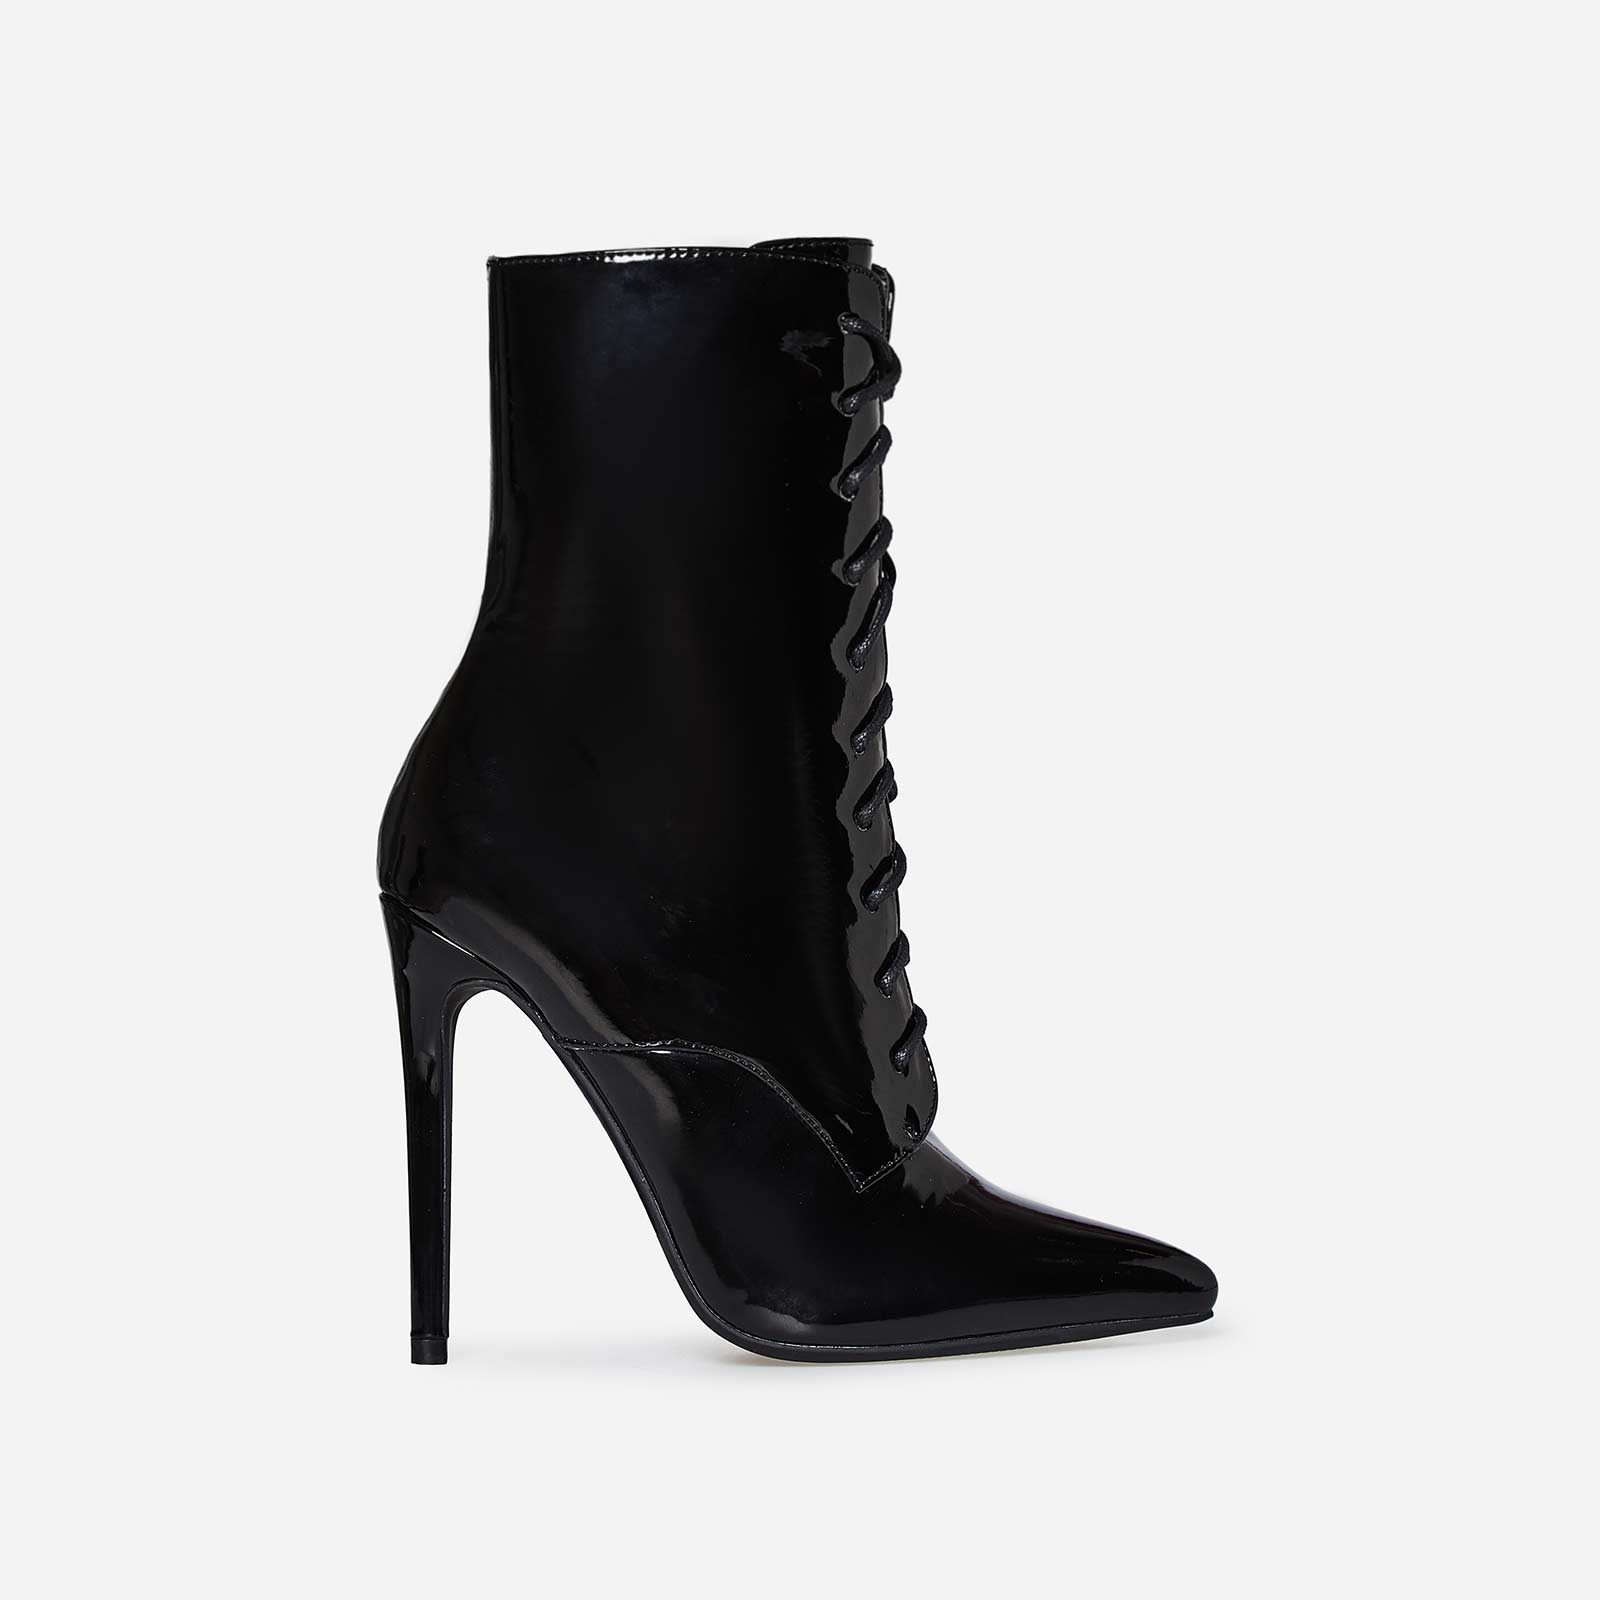 Shanty Lace Up Ankle Boot In Black Patent